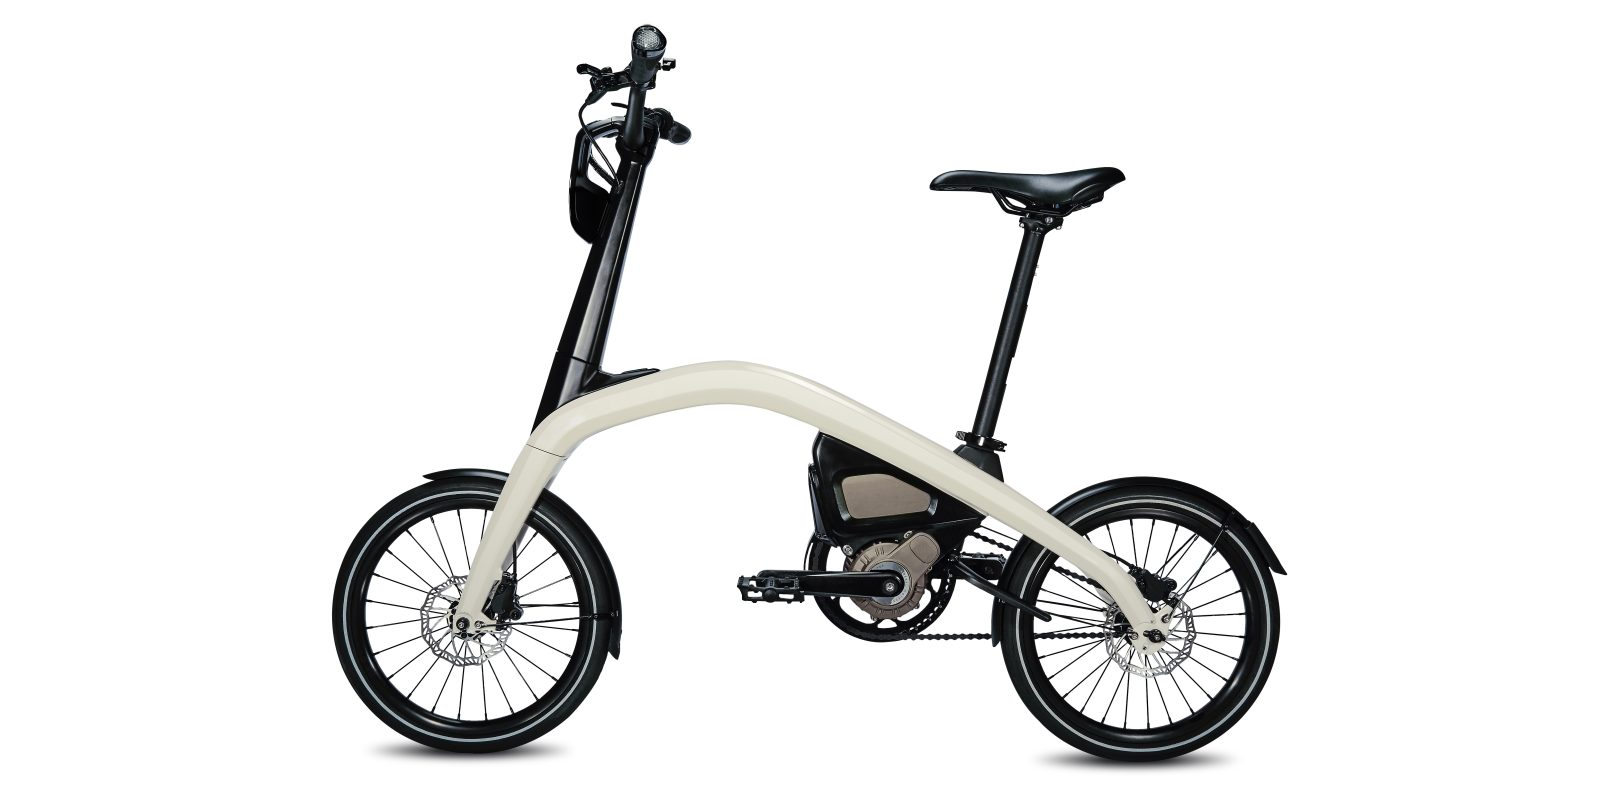 gm electric bicycles unveiled along with a 10k contest to name them